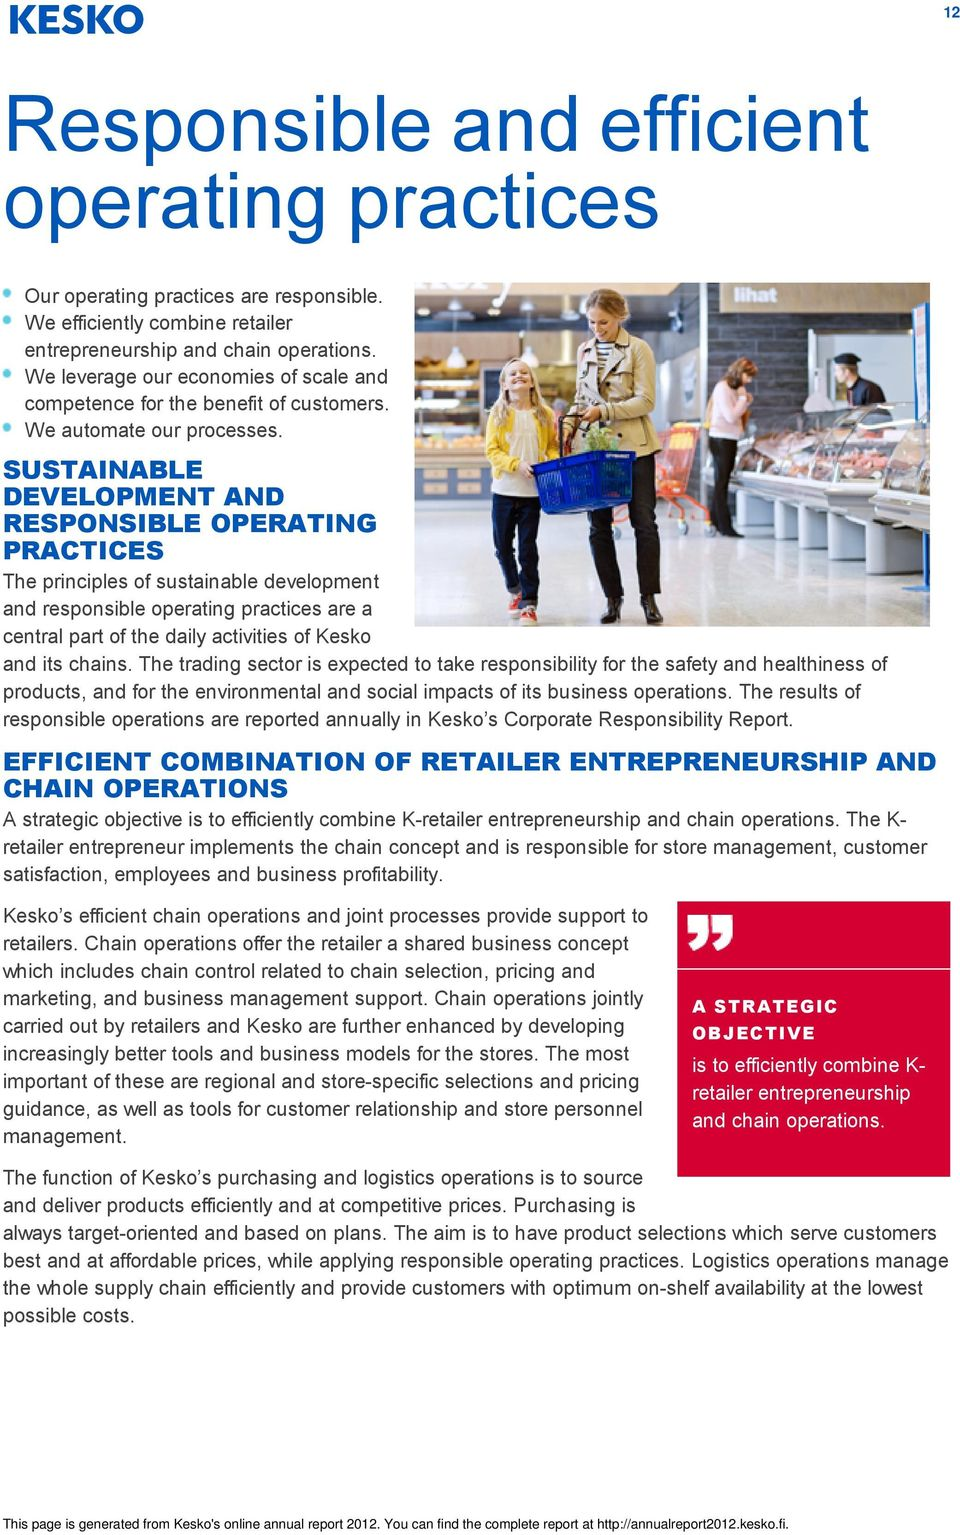 SUSTAINABLE DEVELOPMENT AND RESPONSIBLE OPERATING PRACTICES The principles of sustainable development and responsible operating practices are a central part of the daily activities of Kesko and its